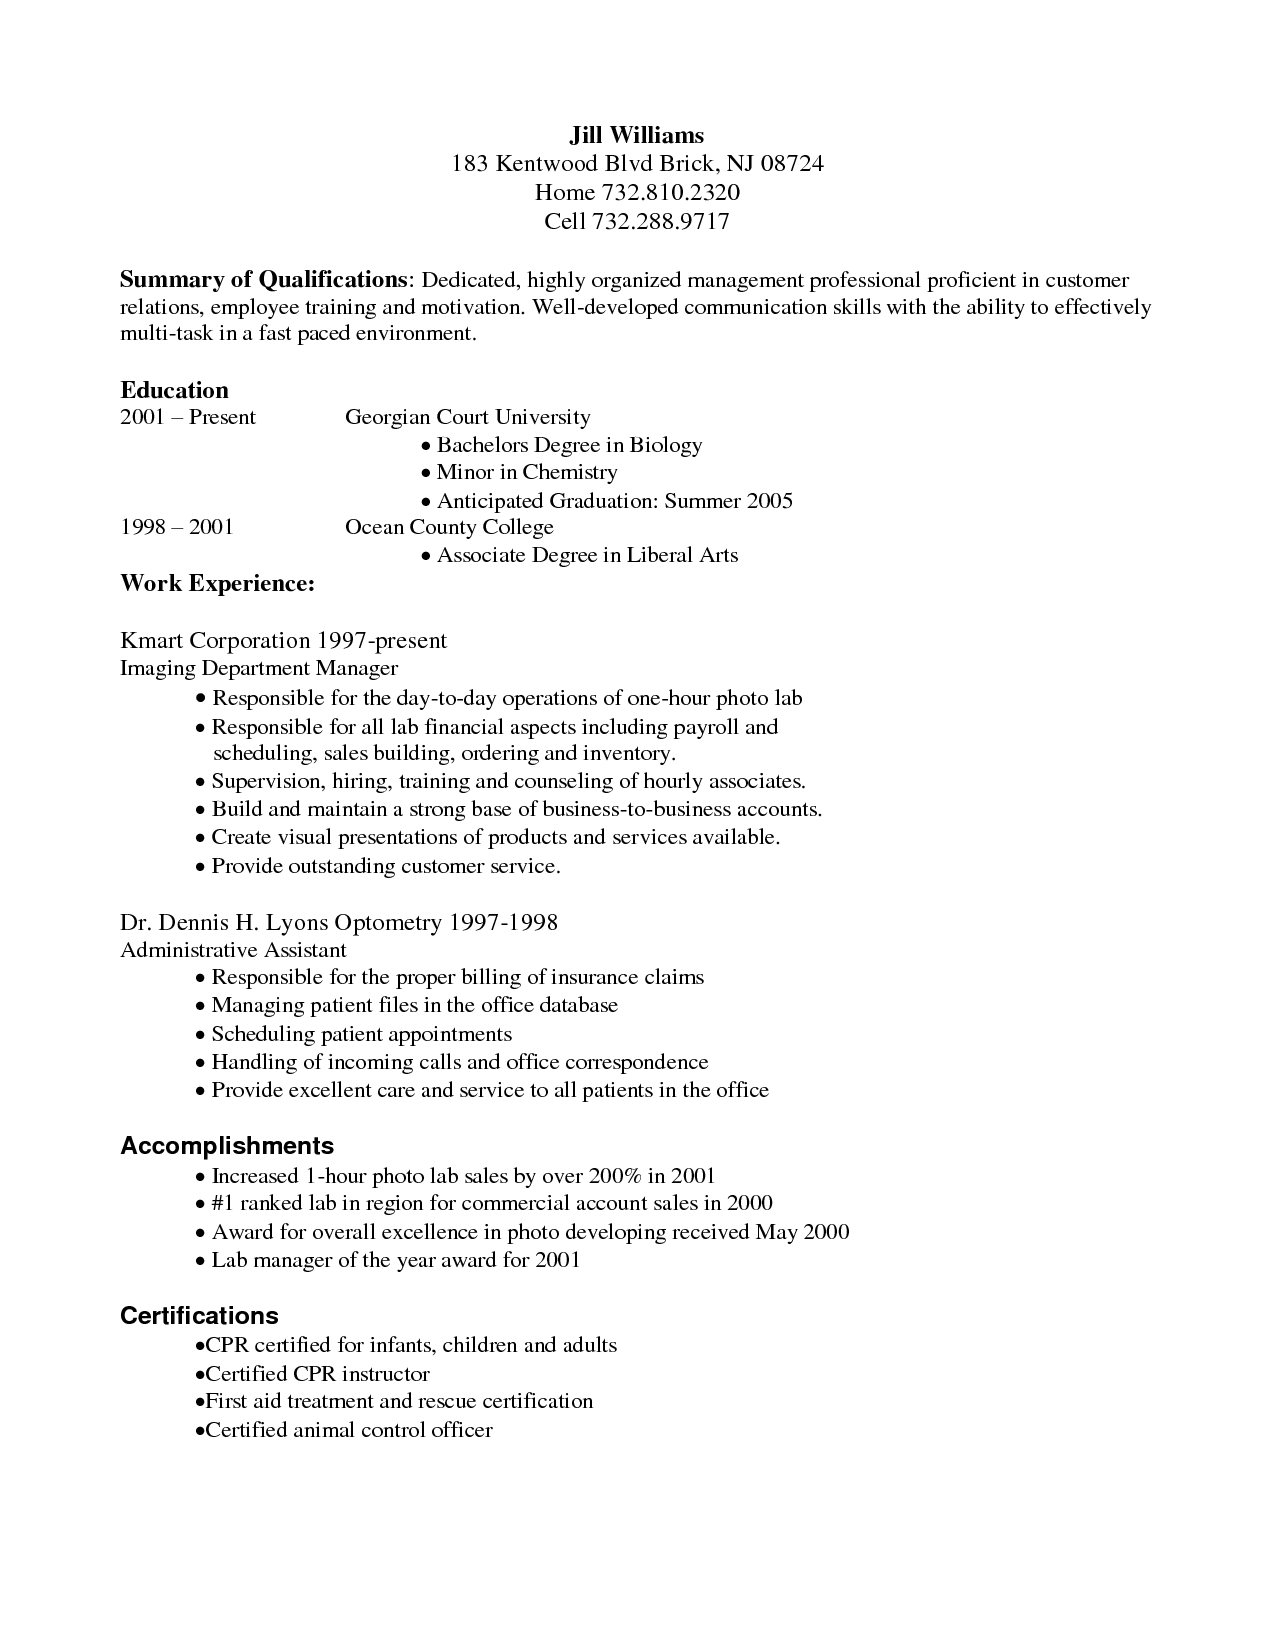 Resume collection medical